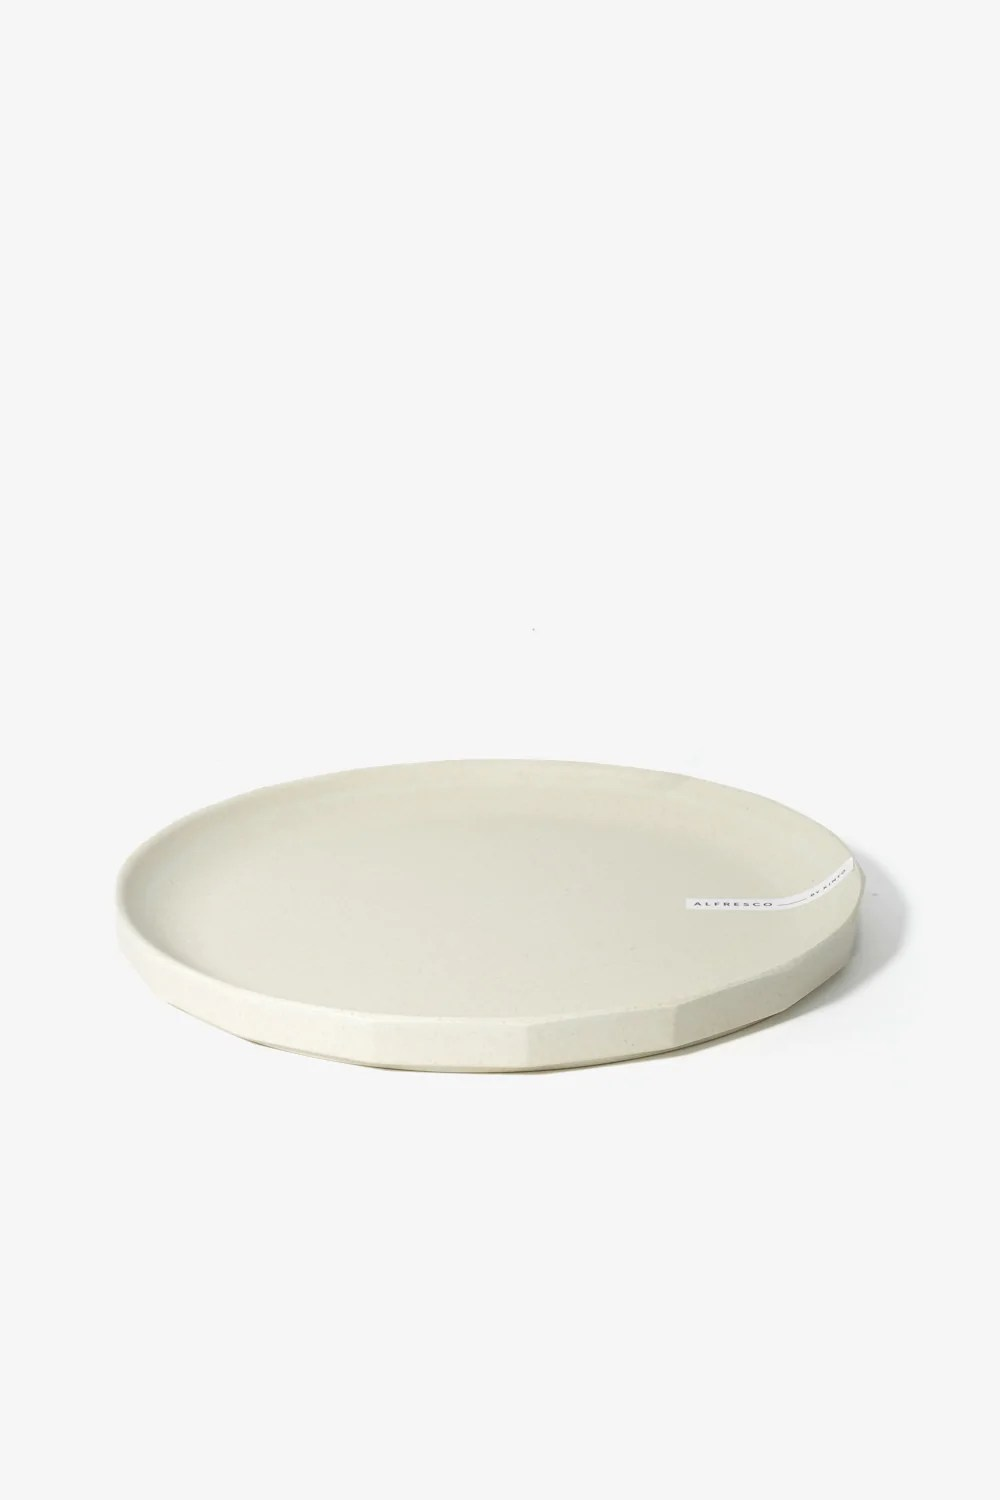 Incredible Alfresco Plate Mm Beige Kinto Alfresco Plate Mm Beige Six Sons 9 84251969 Inches 250mm To Inces dpreview 250mm To In